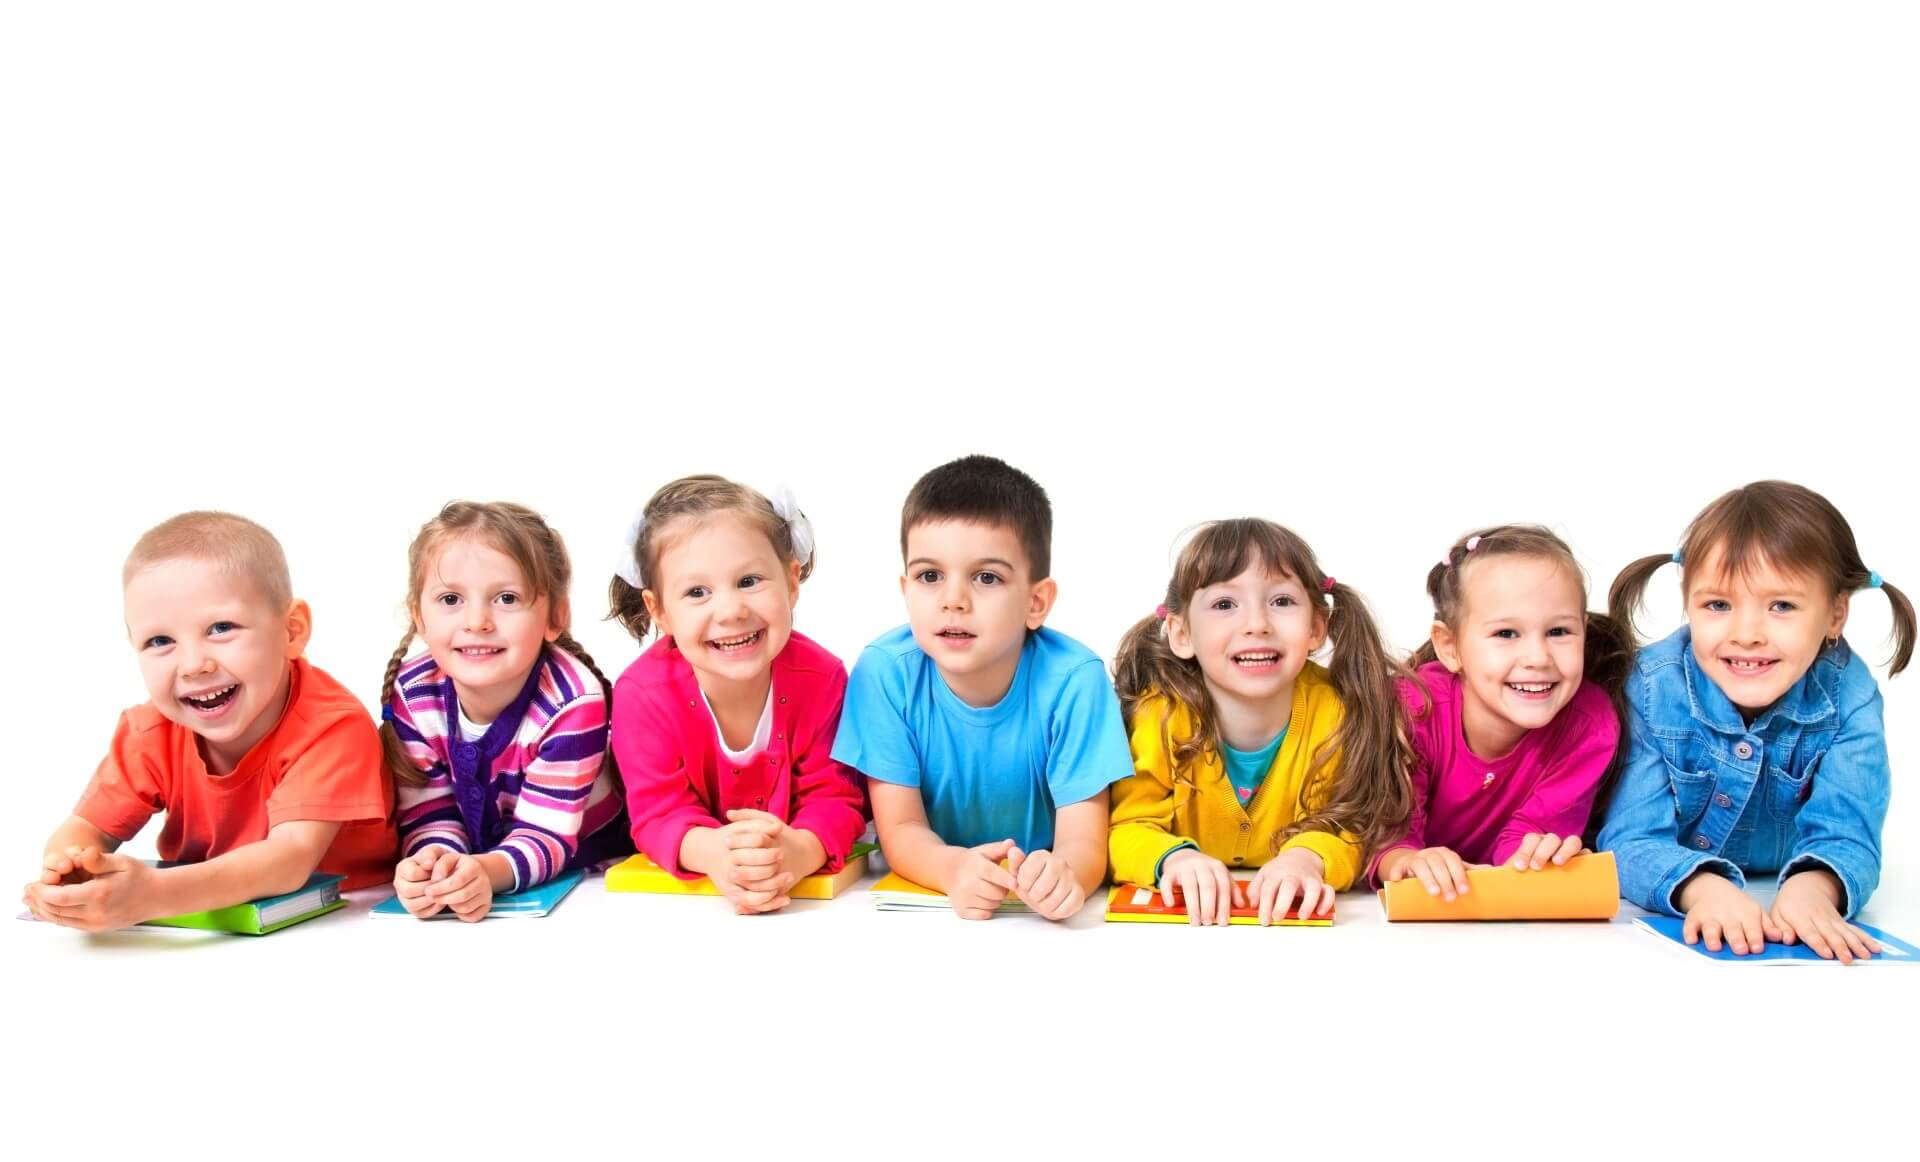 children image